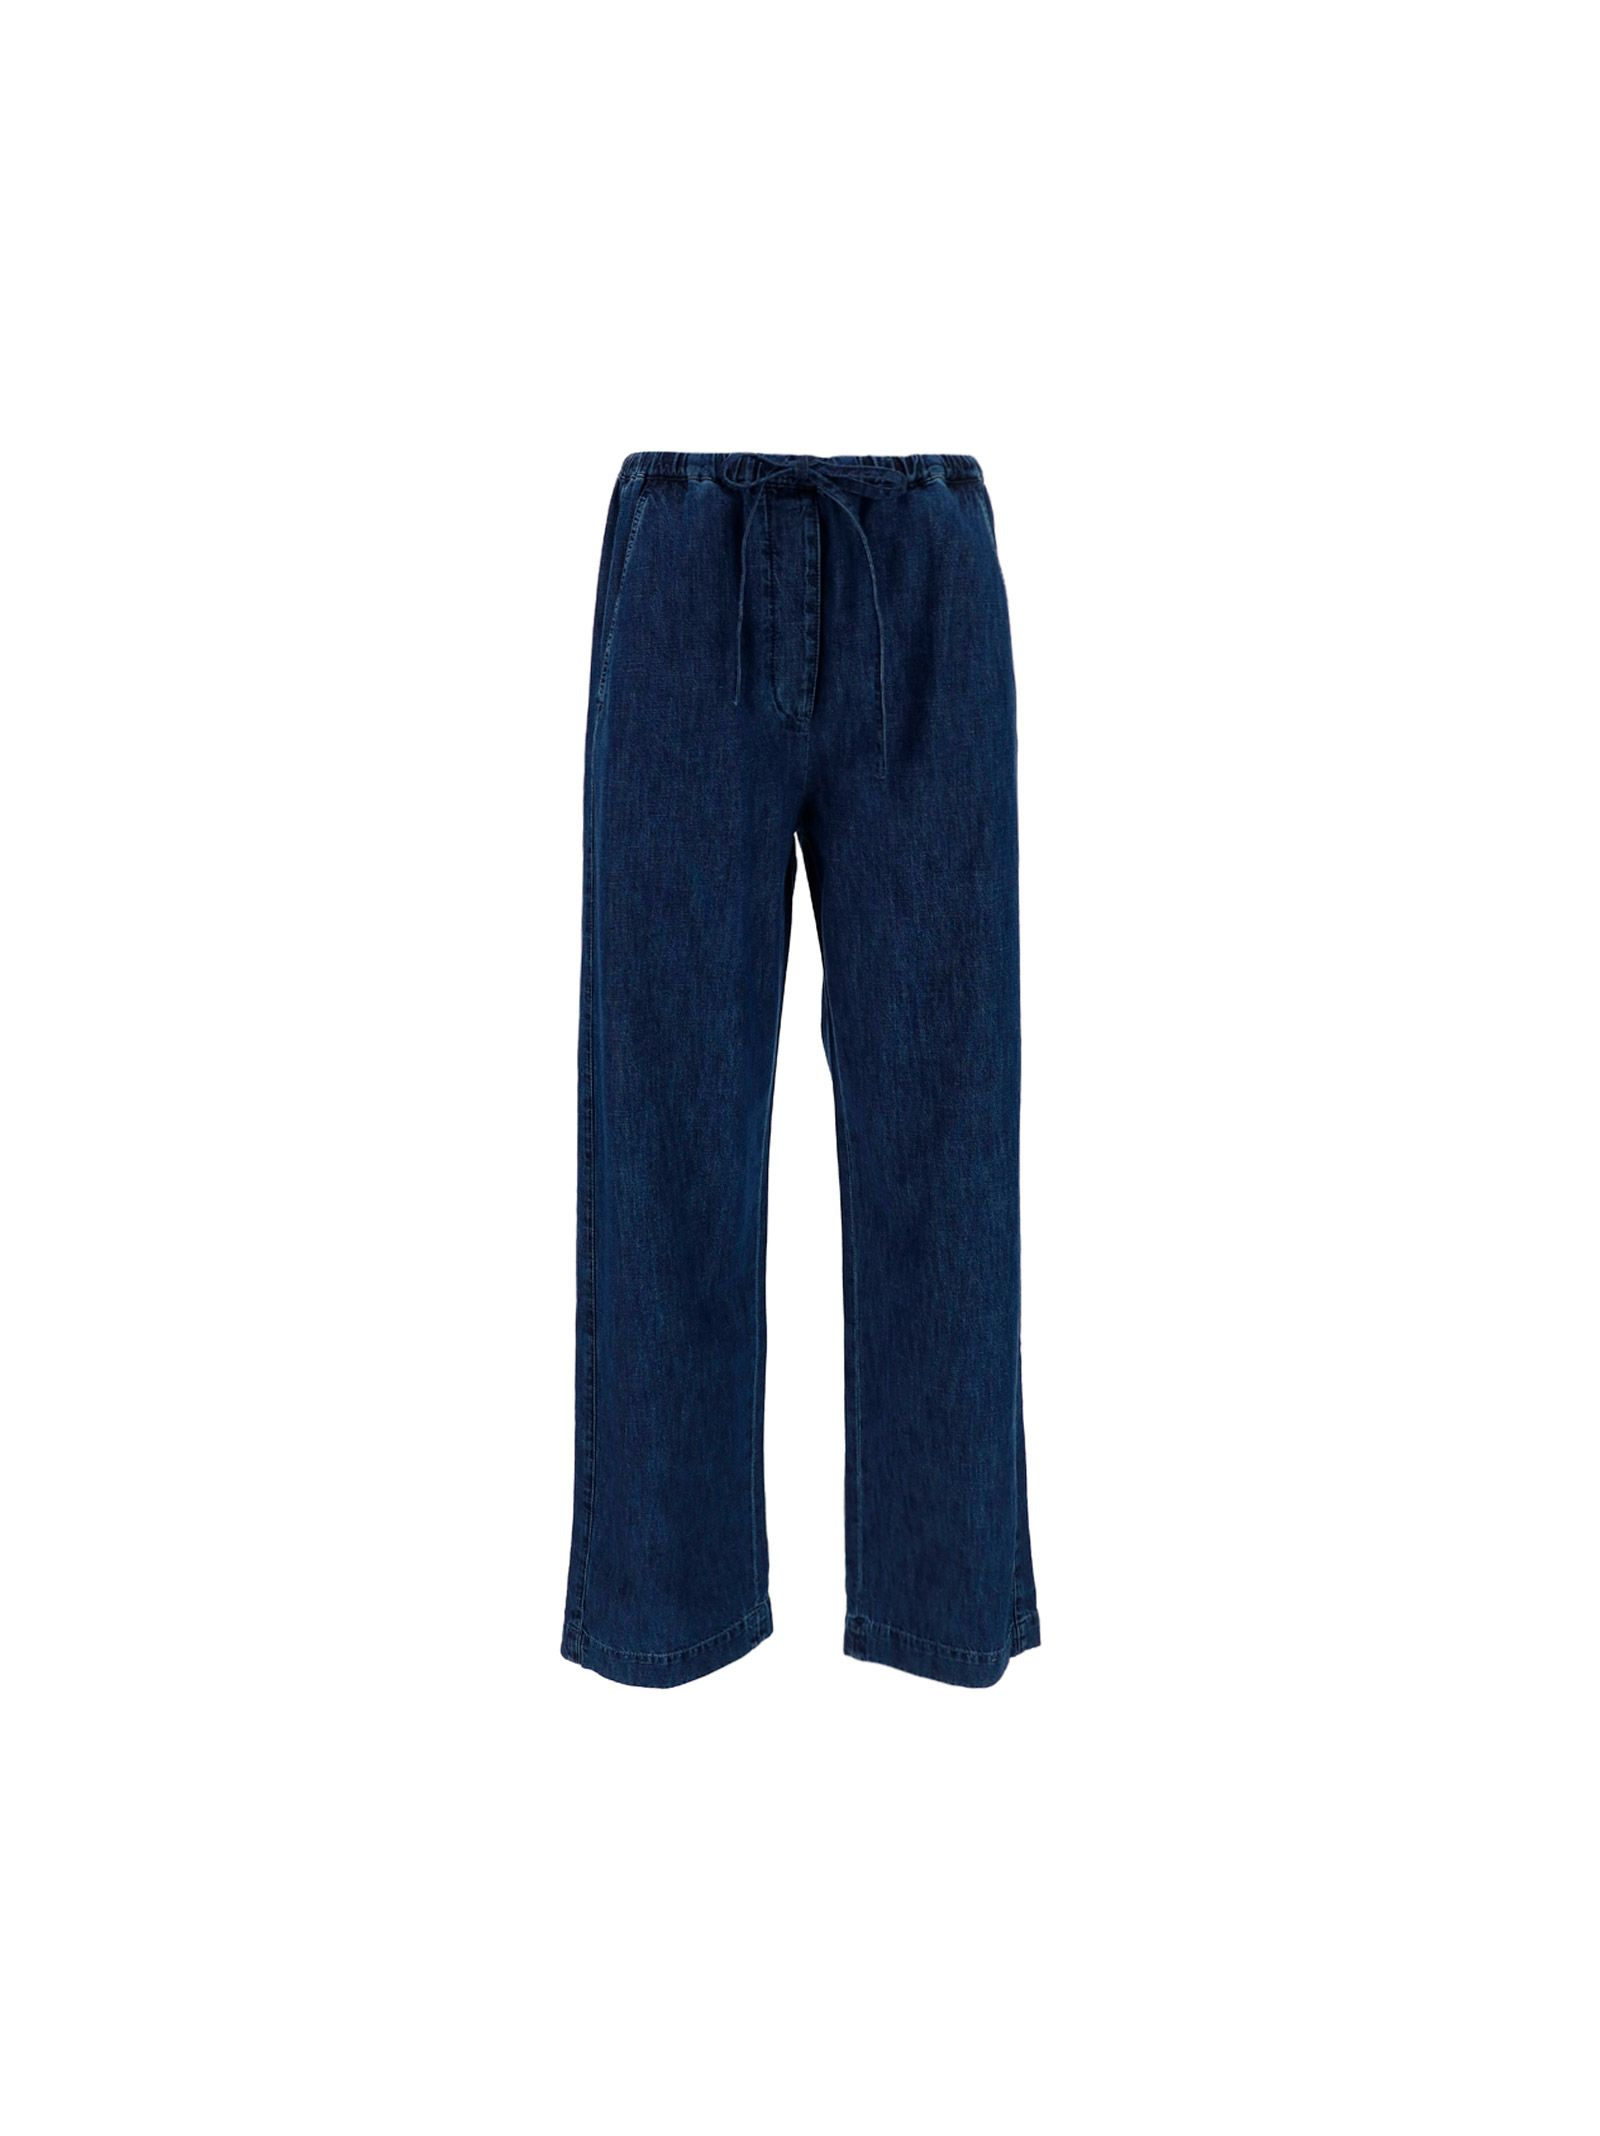 Valentino VALENTINO WOMEN'S BLUE OTHER MATERIALS PANTS